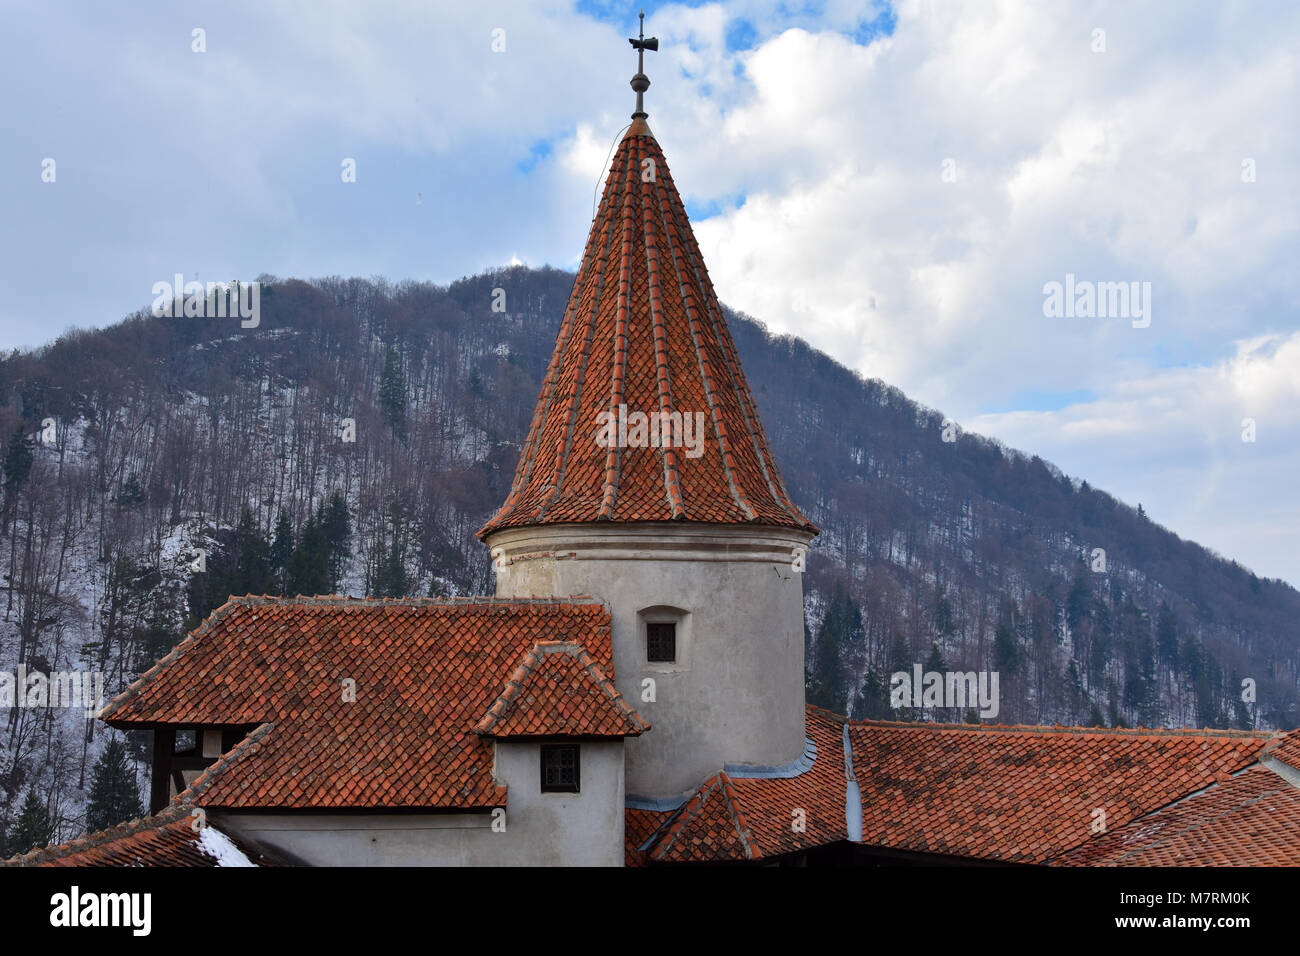 "Bran, Romania. February 4, 2017. Tower of the Bran Castle (Castelul Bran), commonly known as ""Dracula's Castle"" Stock Photo"